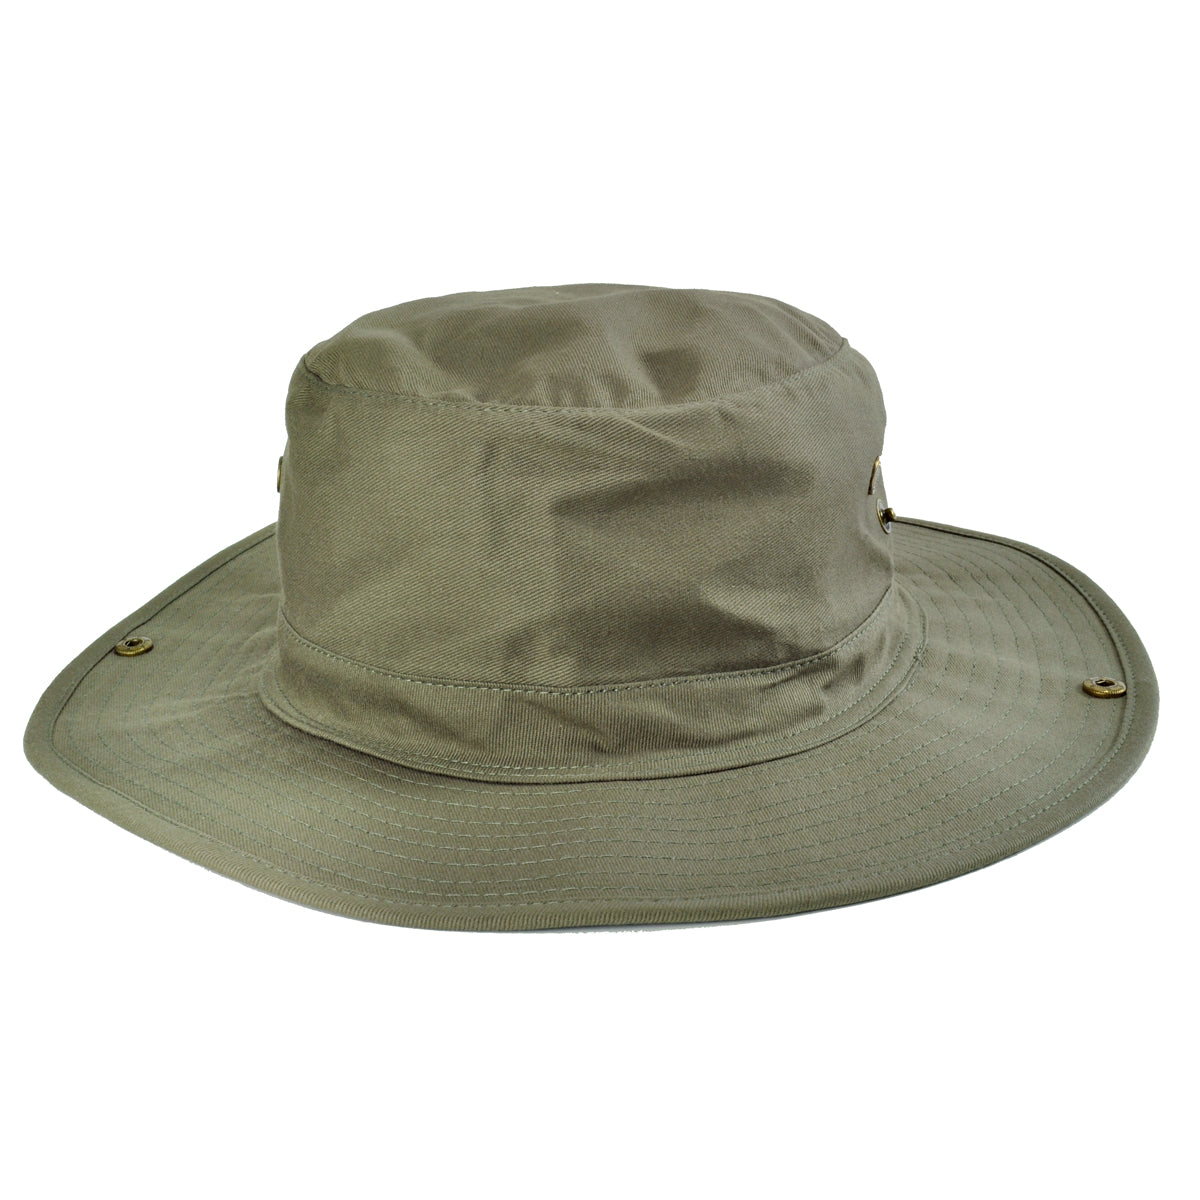 ee5291d0f69 Mens Boonie Bucket Hat Cap 100% Cotton Fishing Military Hunting ...